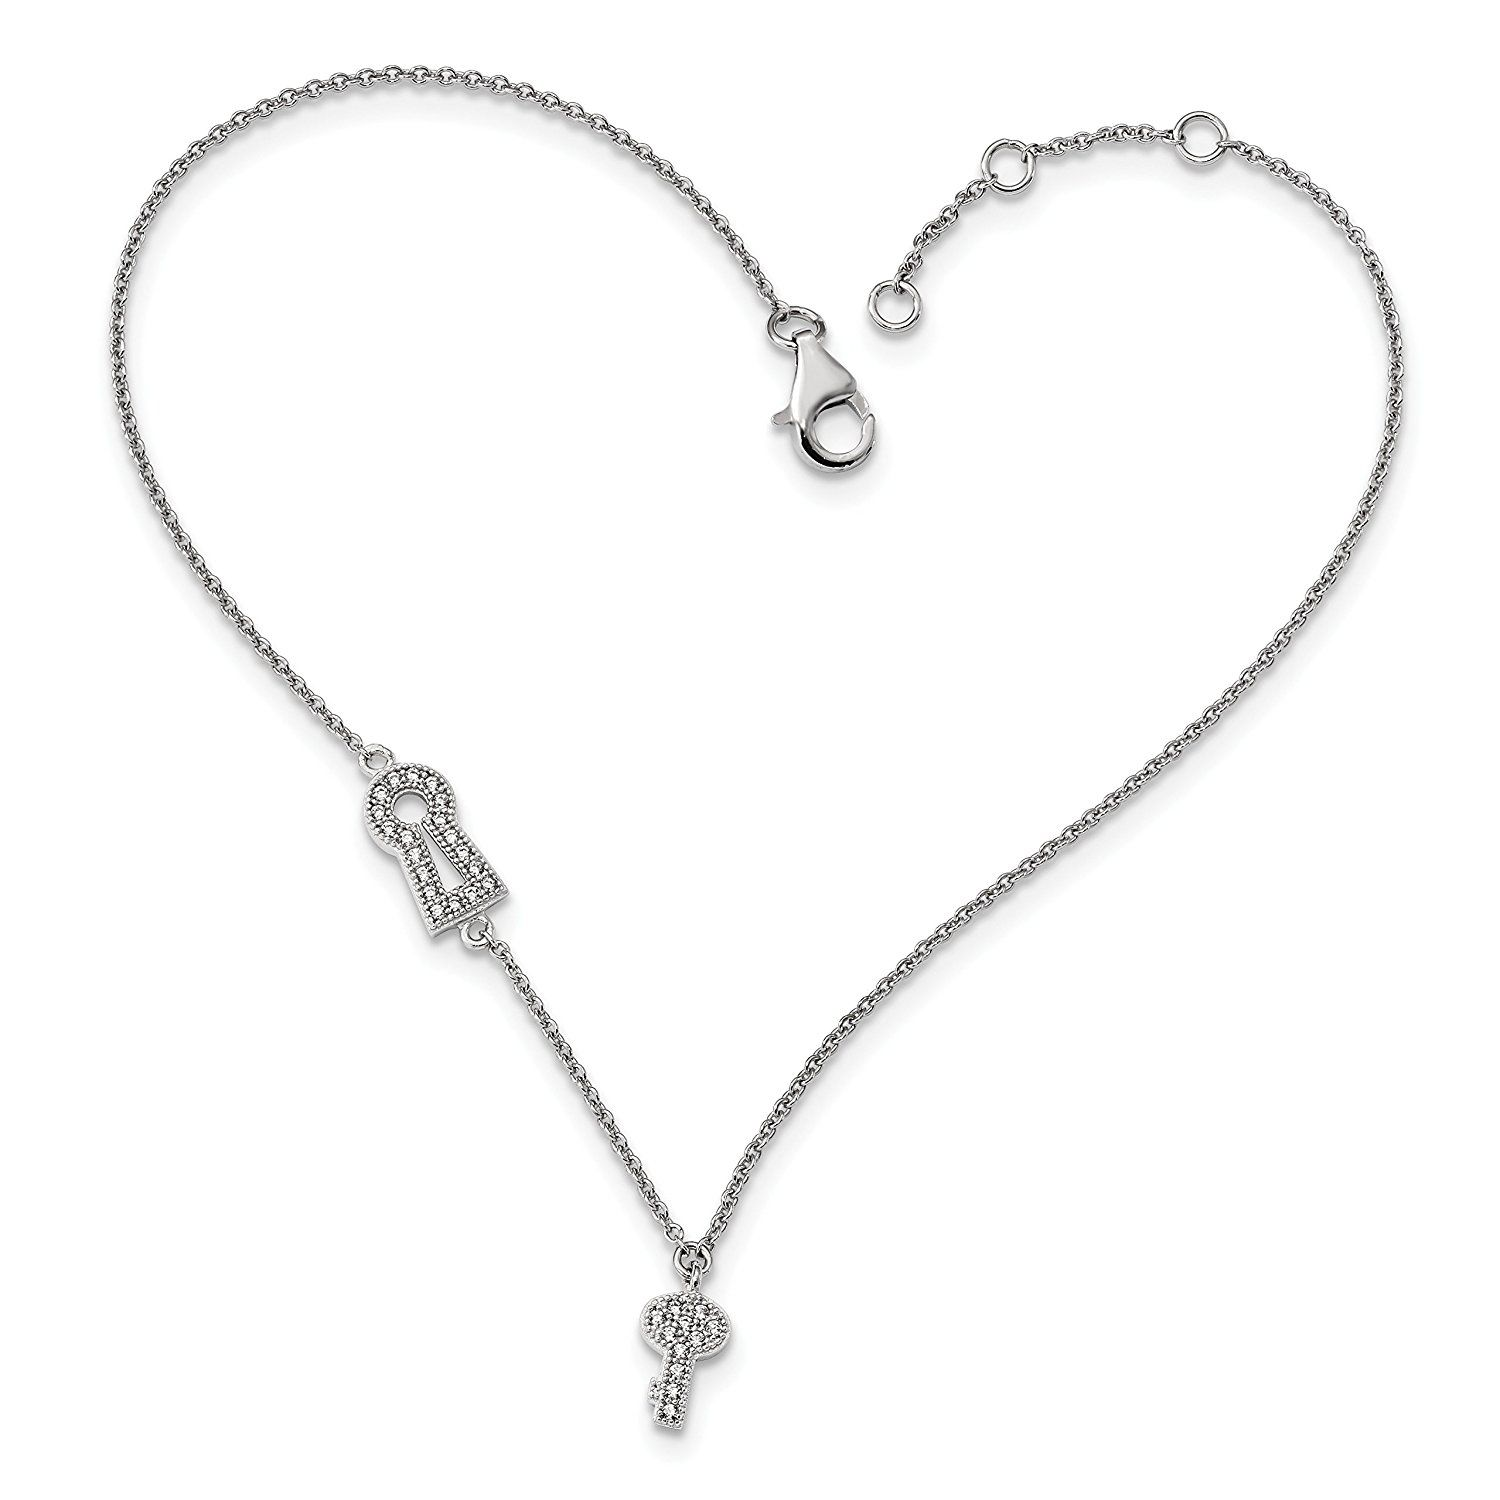 cubic romantic products link details chain sterling zirconia silver product anklets clr ca clear anklet heart